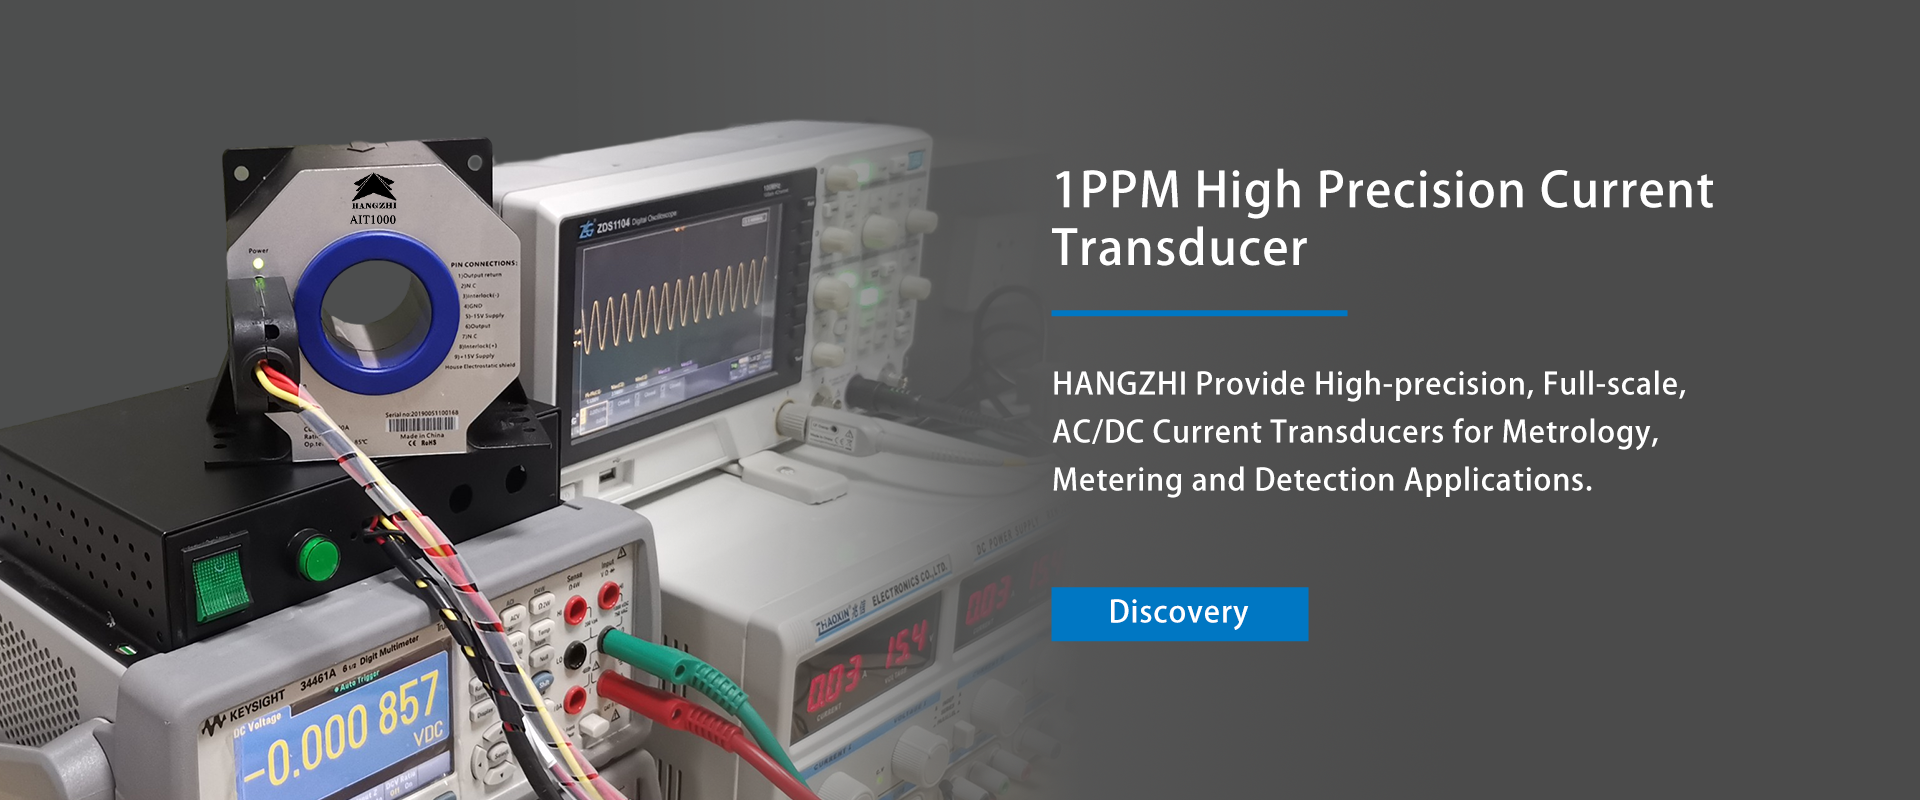 High precision current transducer